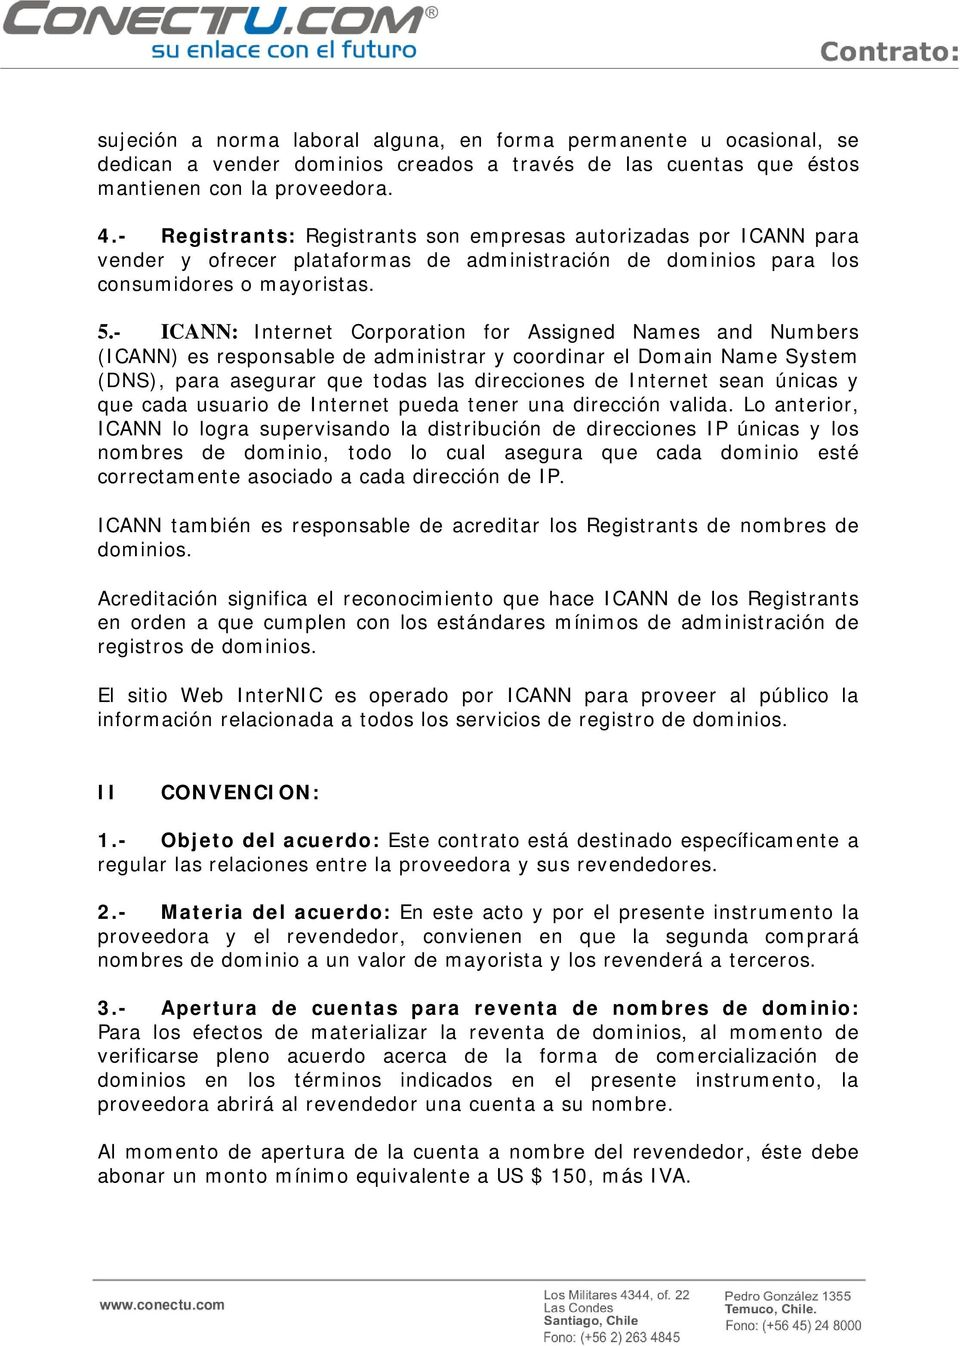 - ICANN: Internet Corporation for Assigned Names and Numbers (ICANN) es responsable de administrar y coordinar el Domain Name System (DNS), para asegurar que todas las direcciones de Internet sean